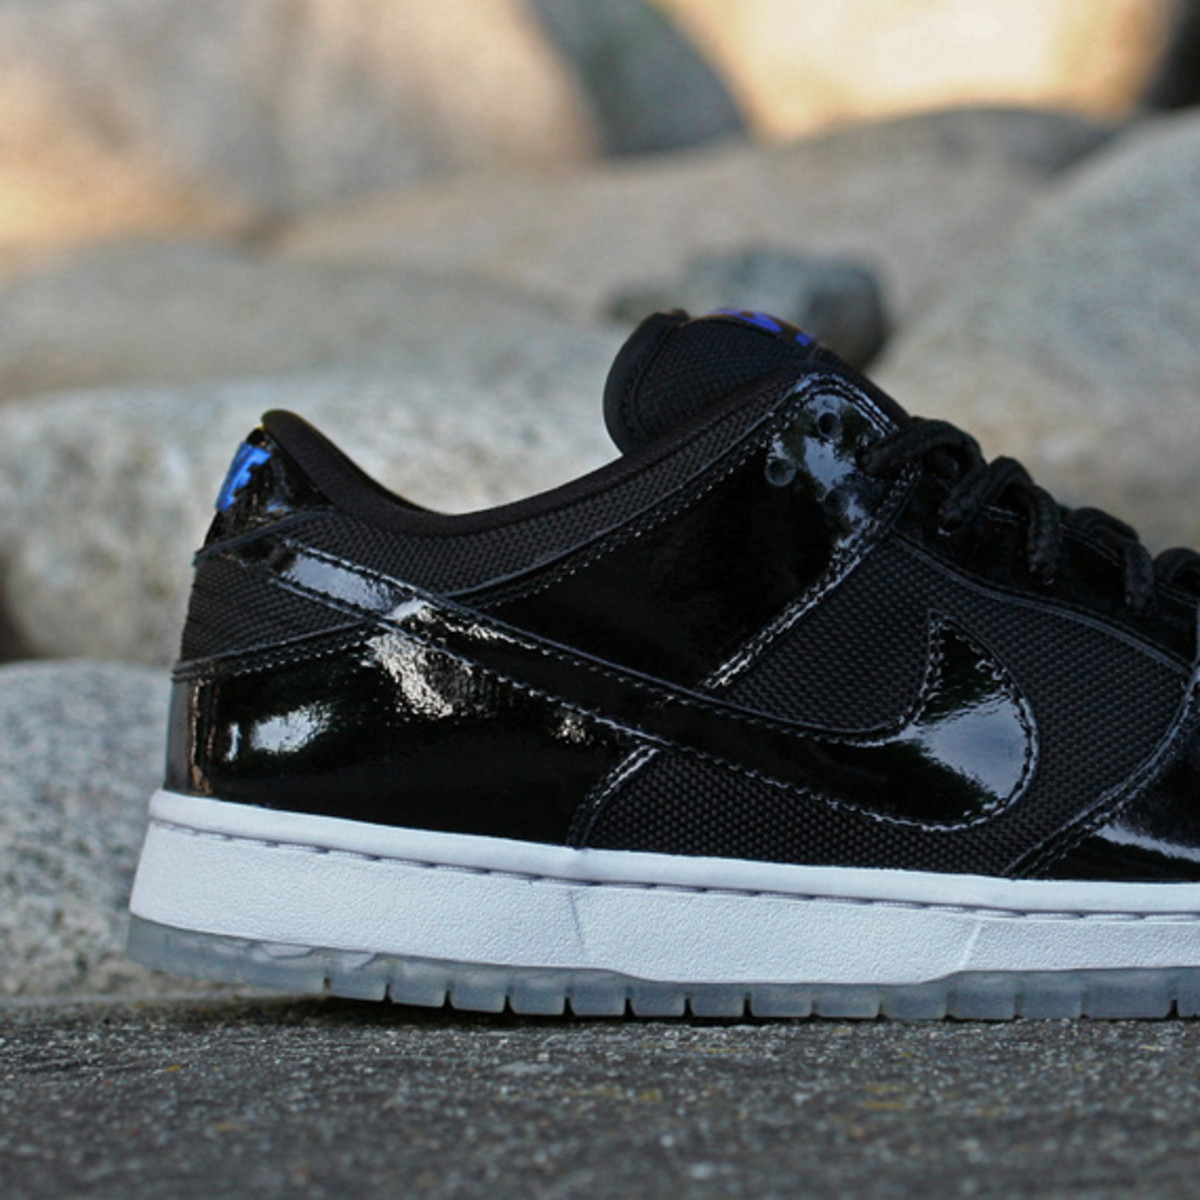 nike-sb-dunk-low-pro-space-jam-03 9acc8b31c7f9